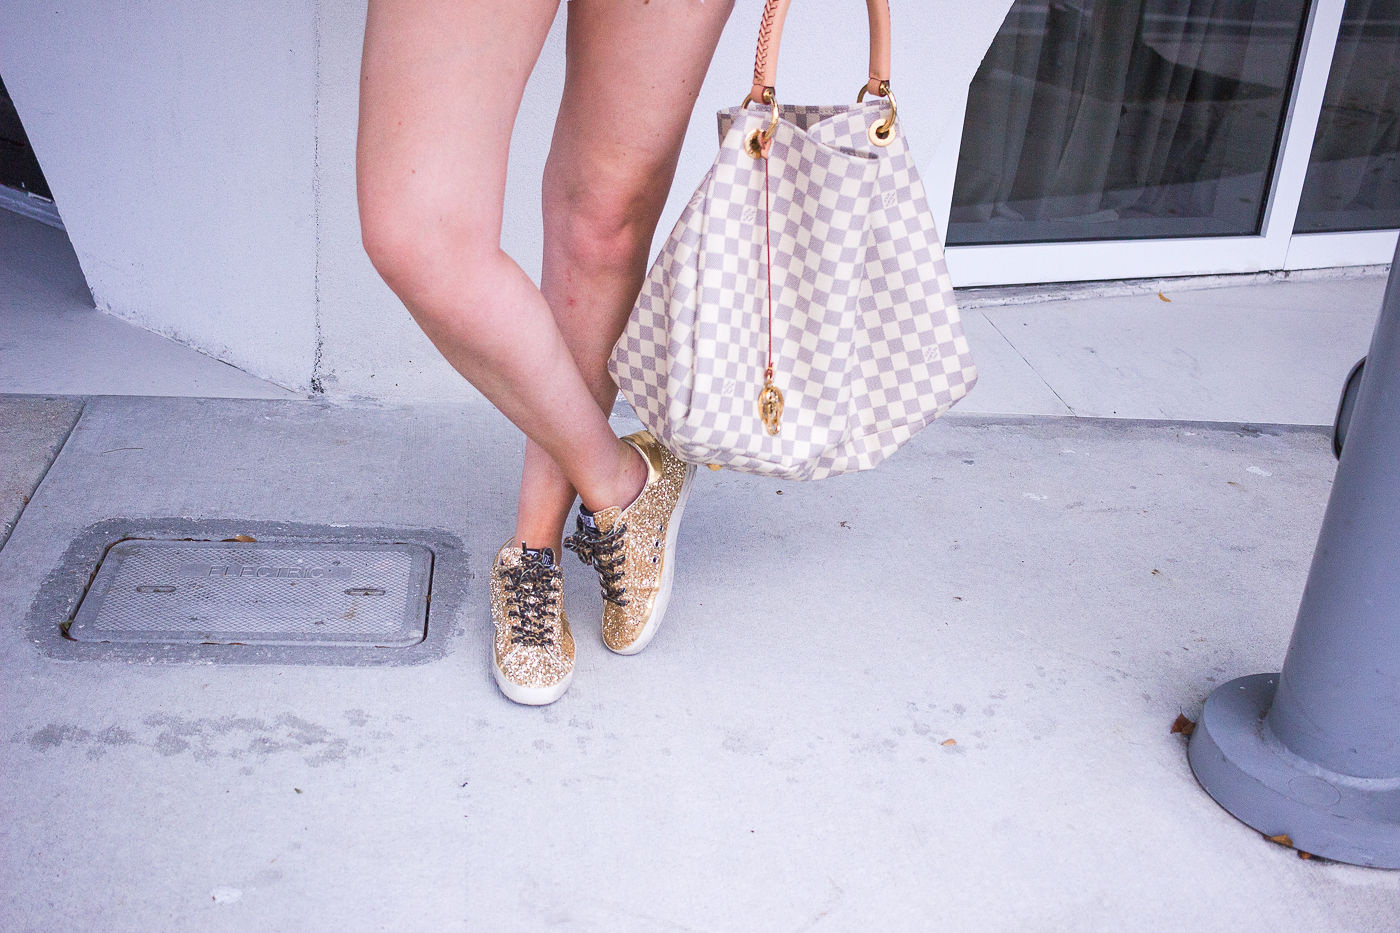 golden goose sneakers review | why you need dirty sneakers | Louis Vuitton artsy | Gucci glitter sunglasses | Golden Goose sneakers| golden goose gold glitter sneakers | golden goose glitter sneakers